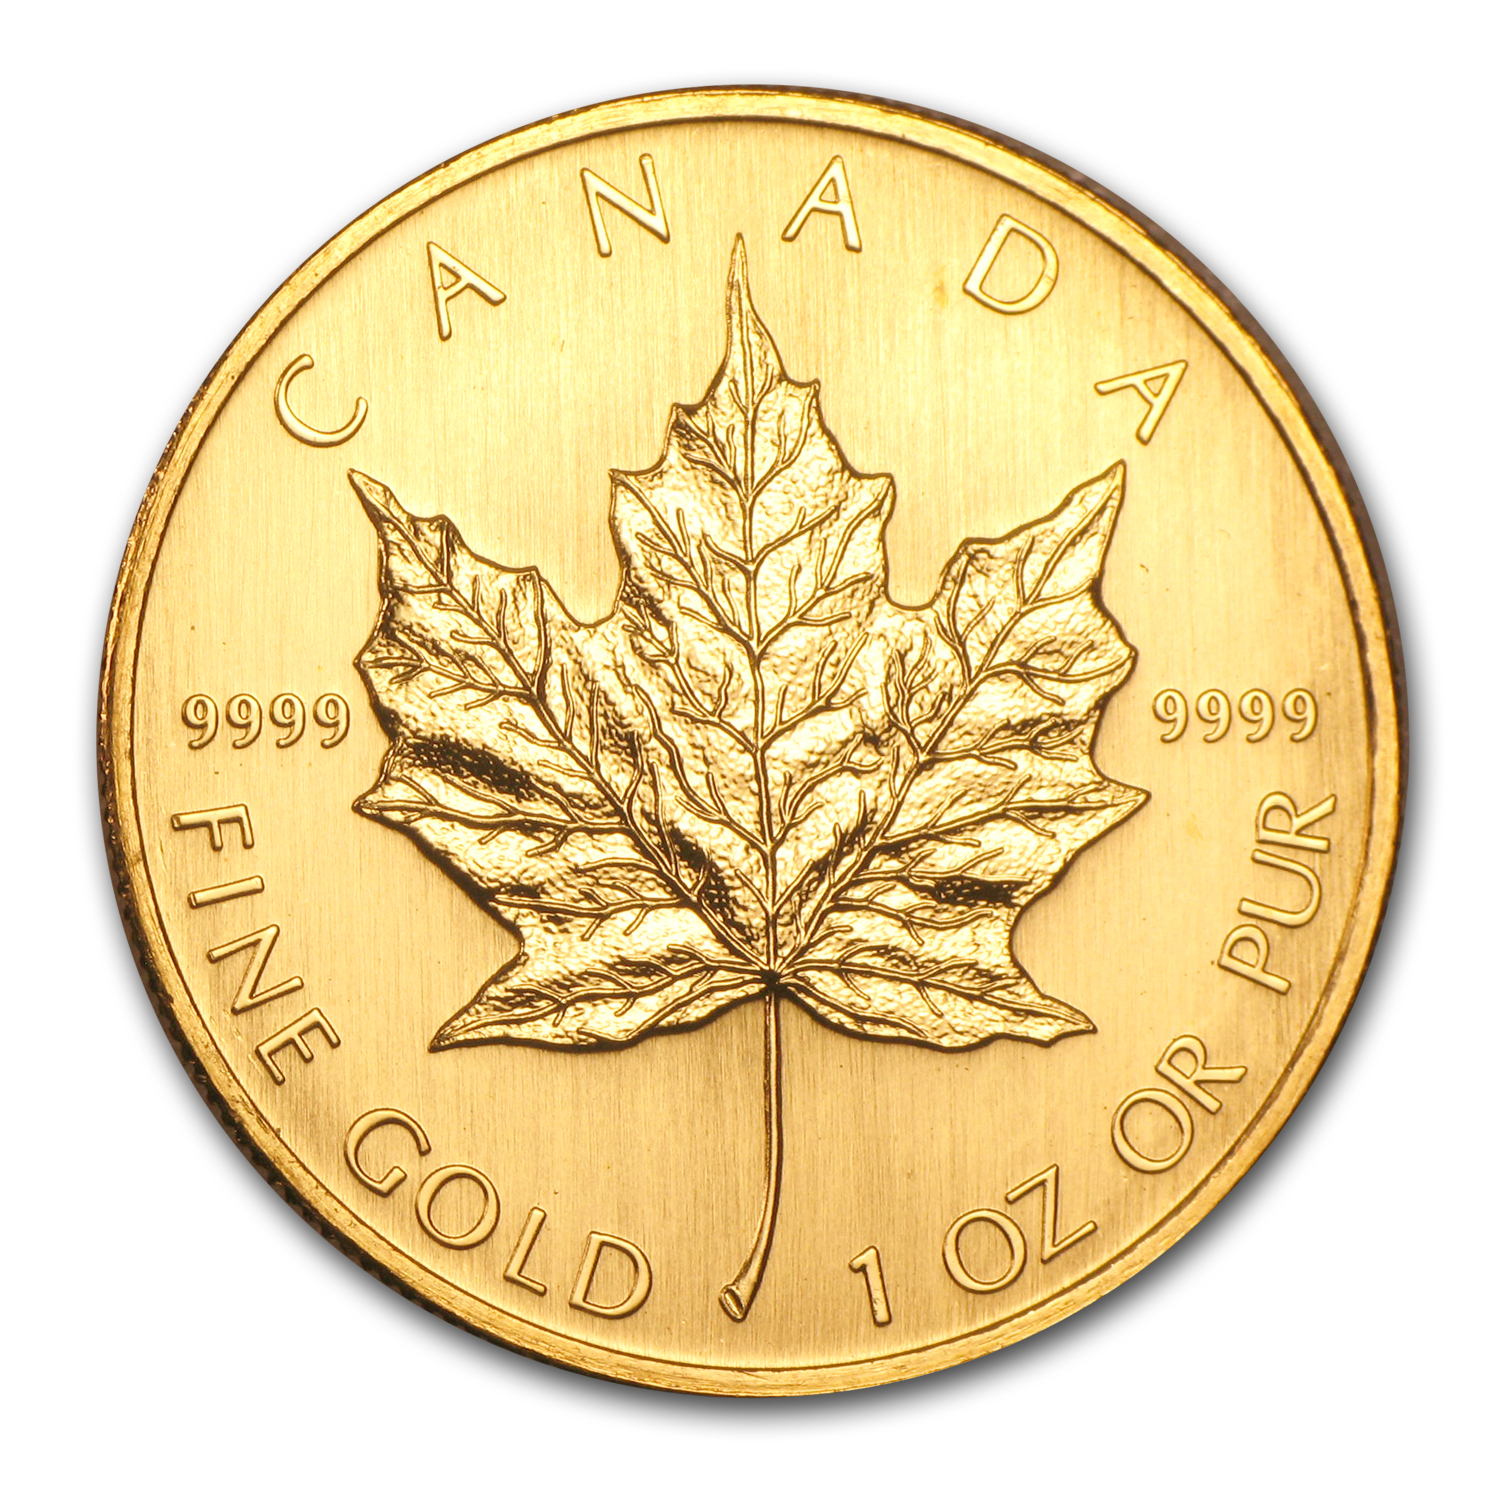 2003 Canada 1 oz Gold Maple Leaf BU